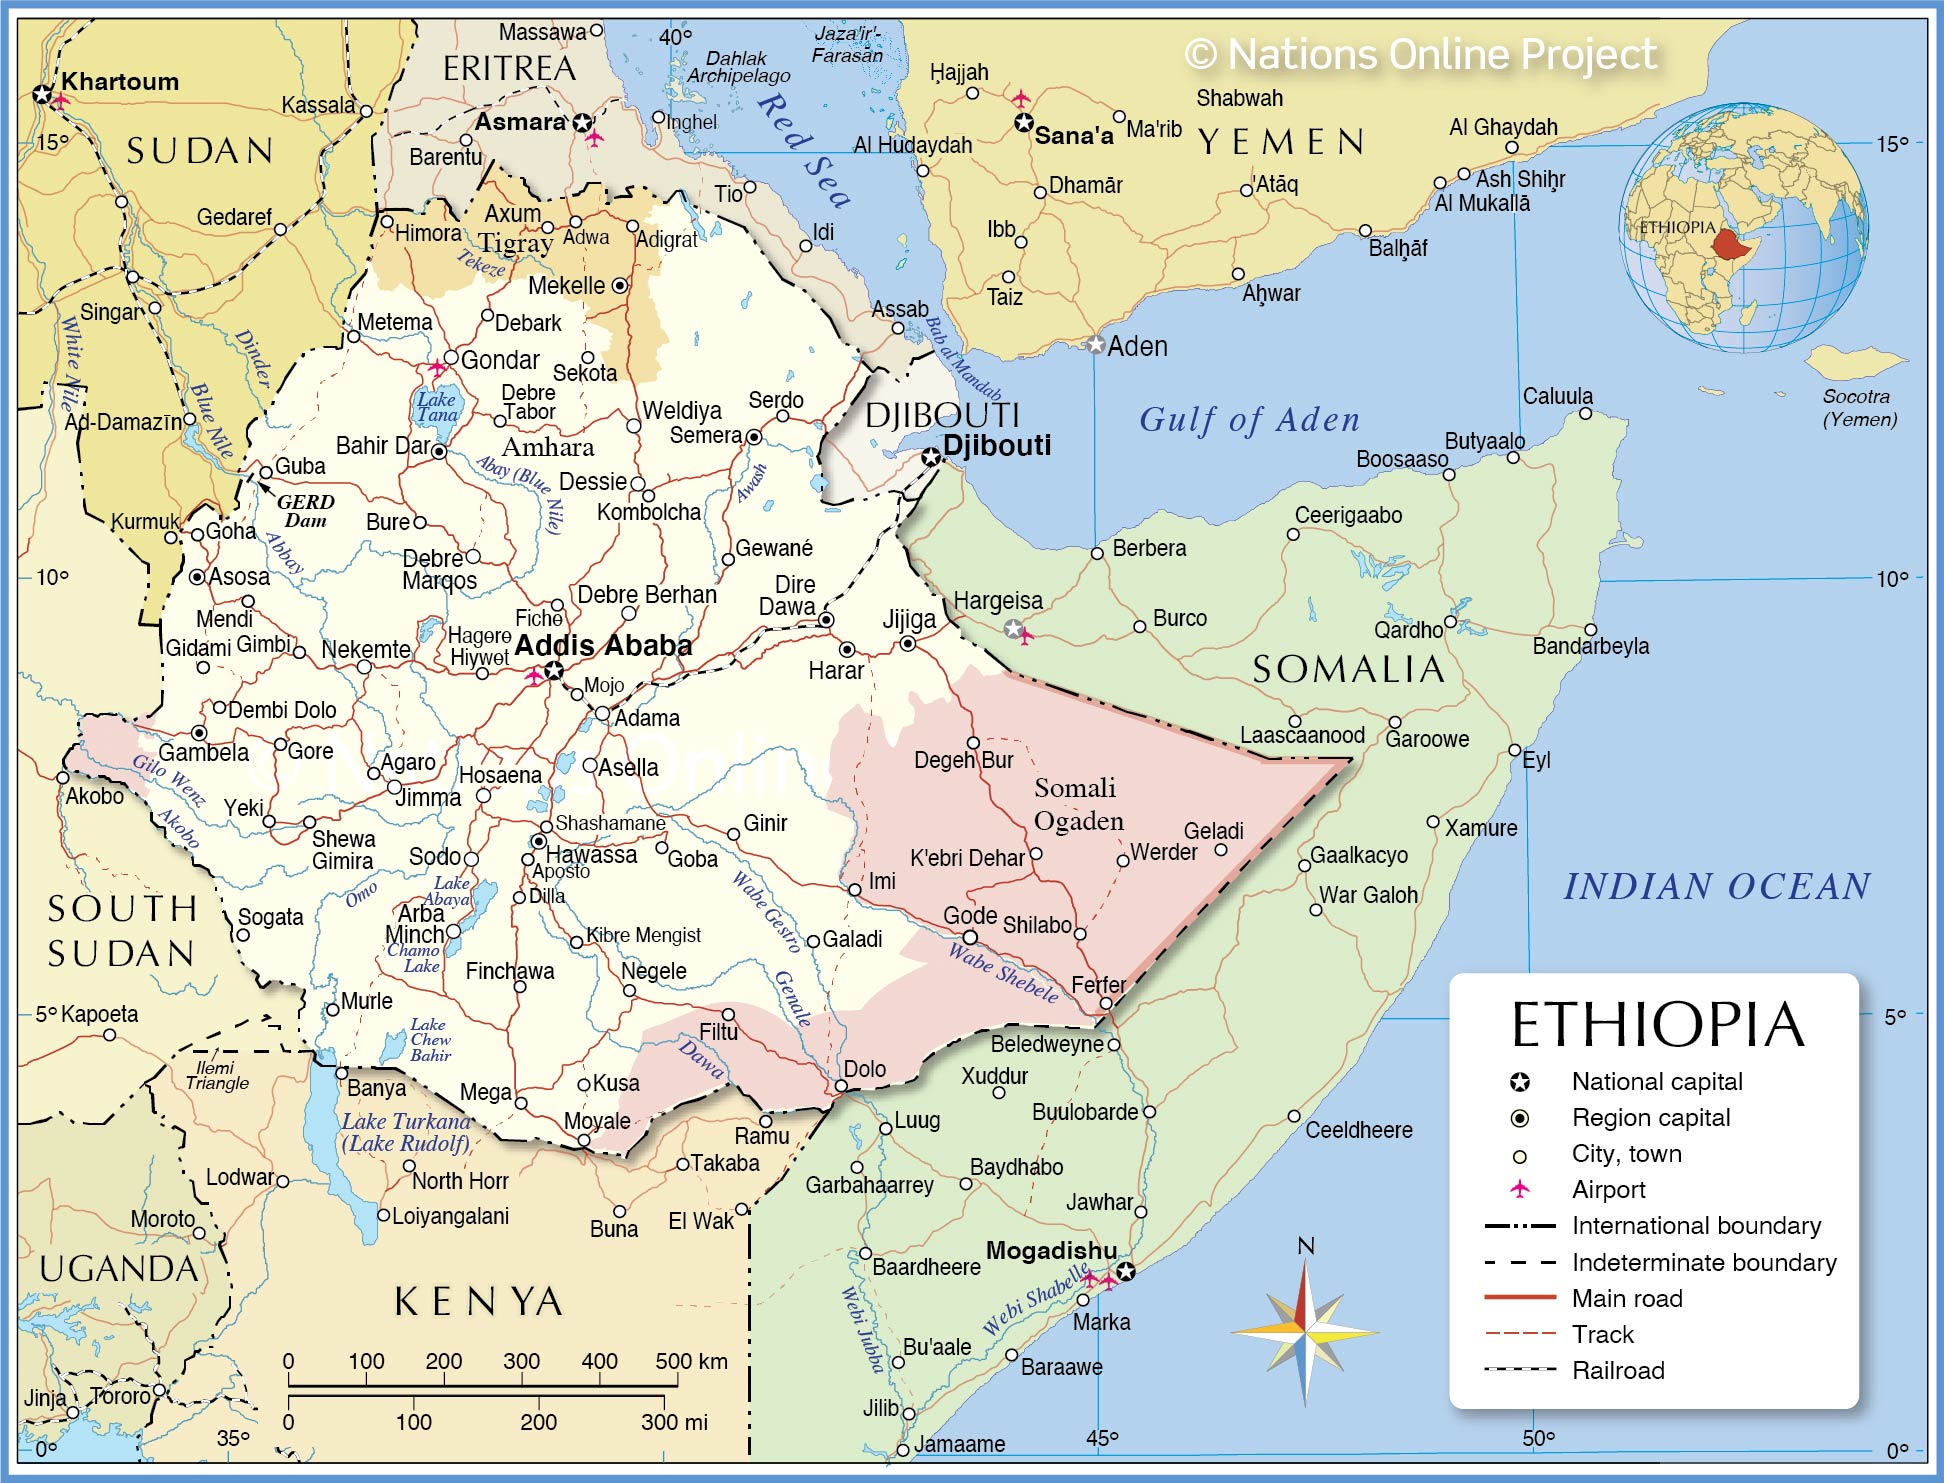 Political Map of Ethiopia with international borders, the national capital Addis Ababa, region capitals, major cities, main roads, railroads, and major airports